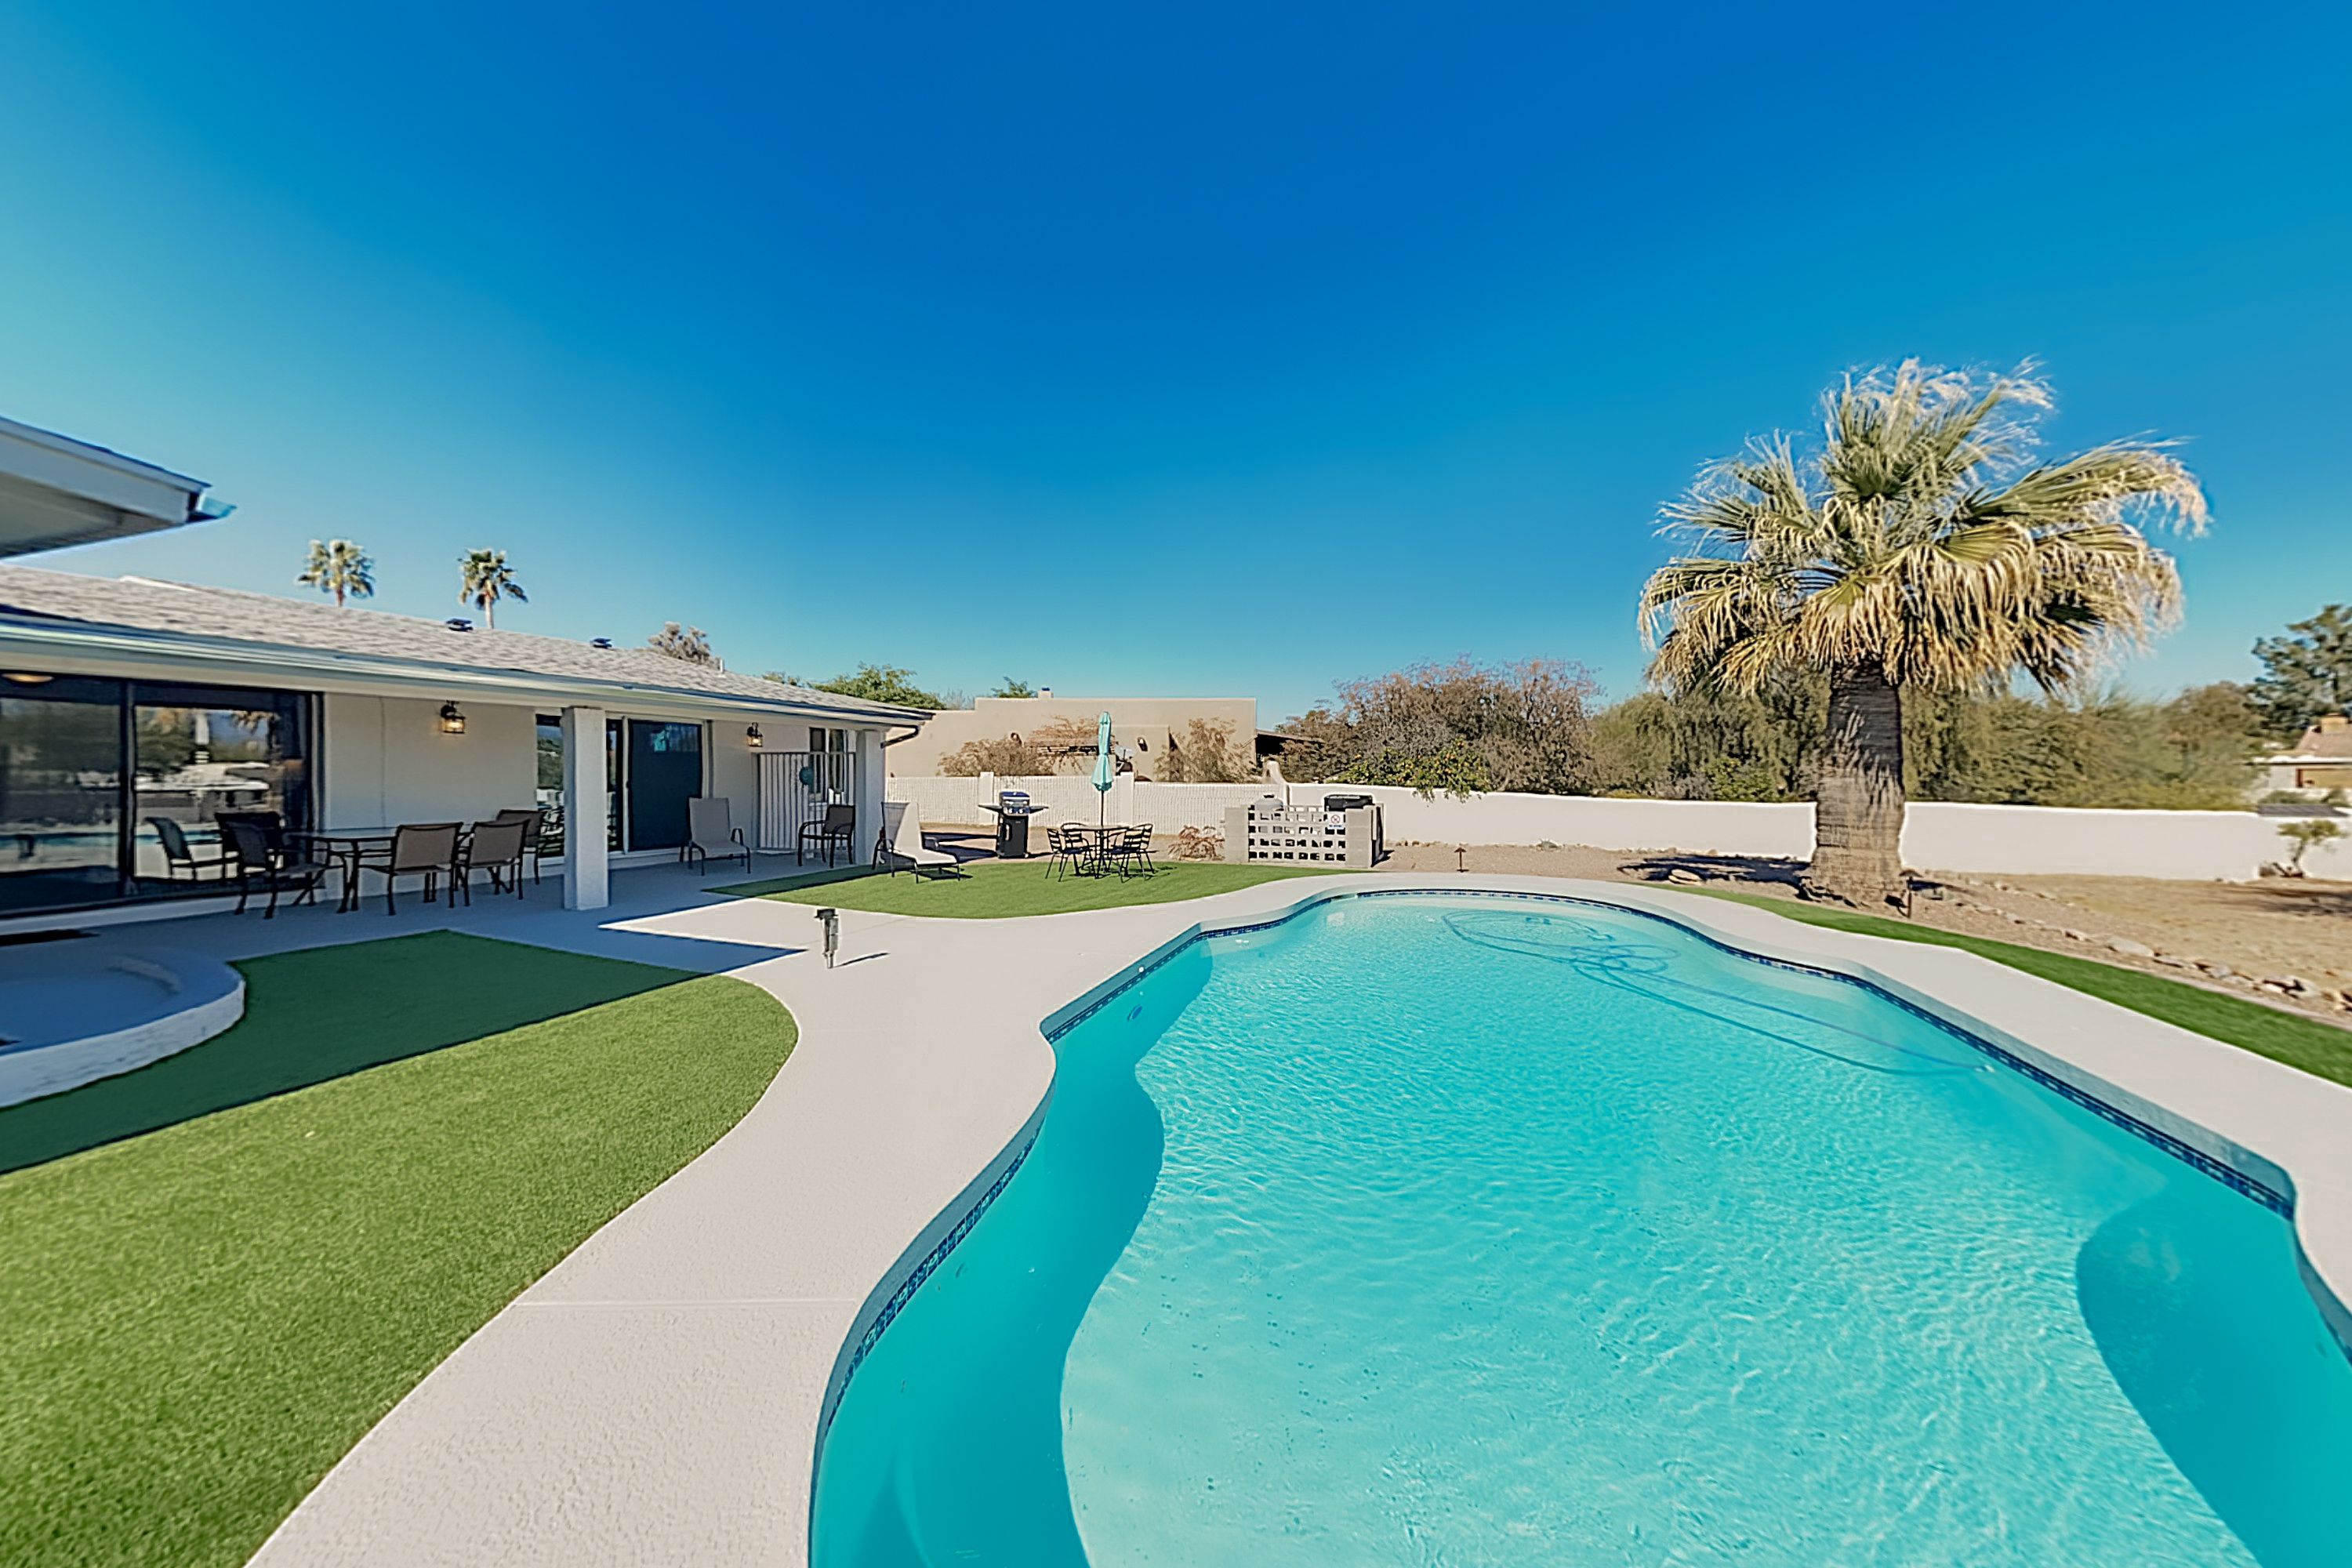 Fountain Hills AZ Vacation Rental Welcome to Fountain